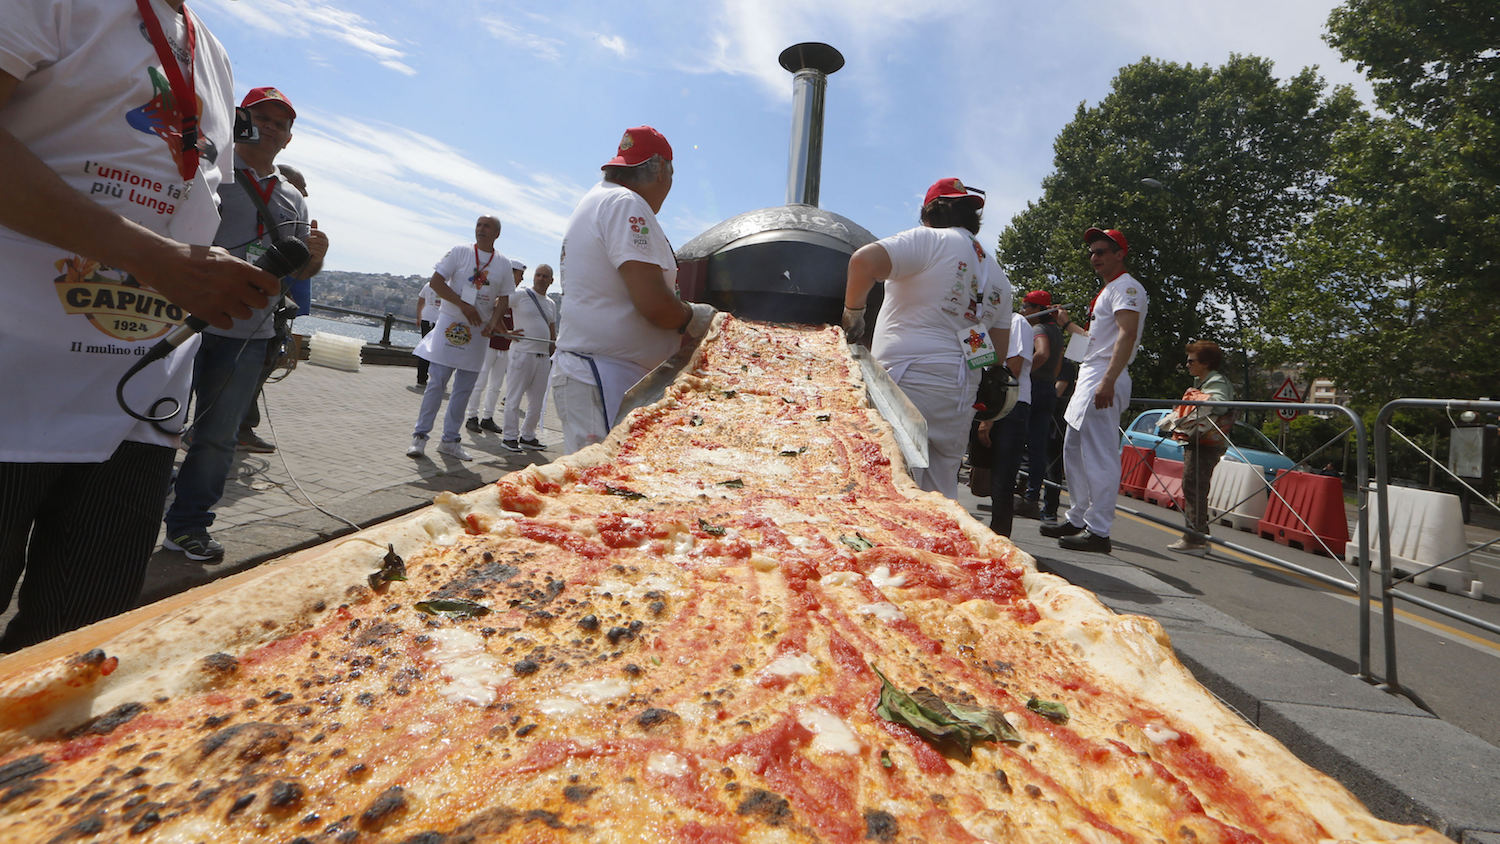 World's longest pizza